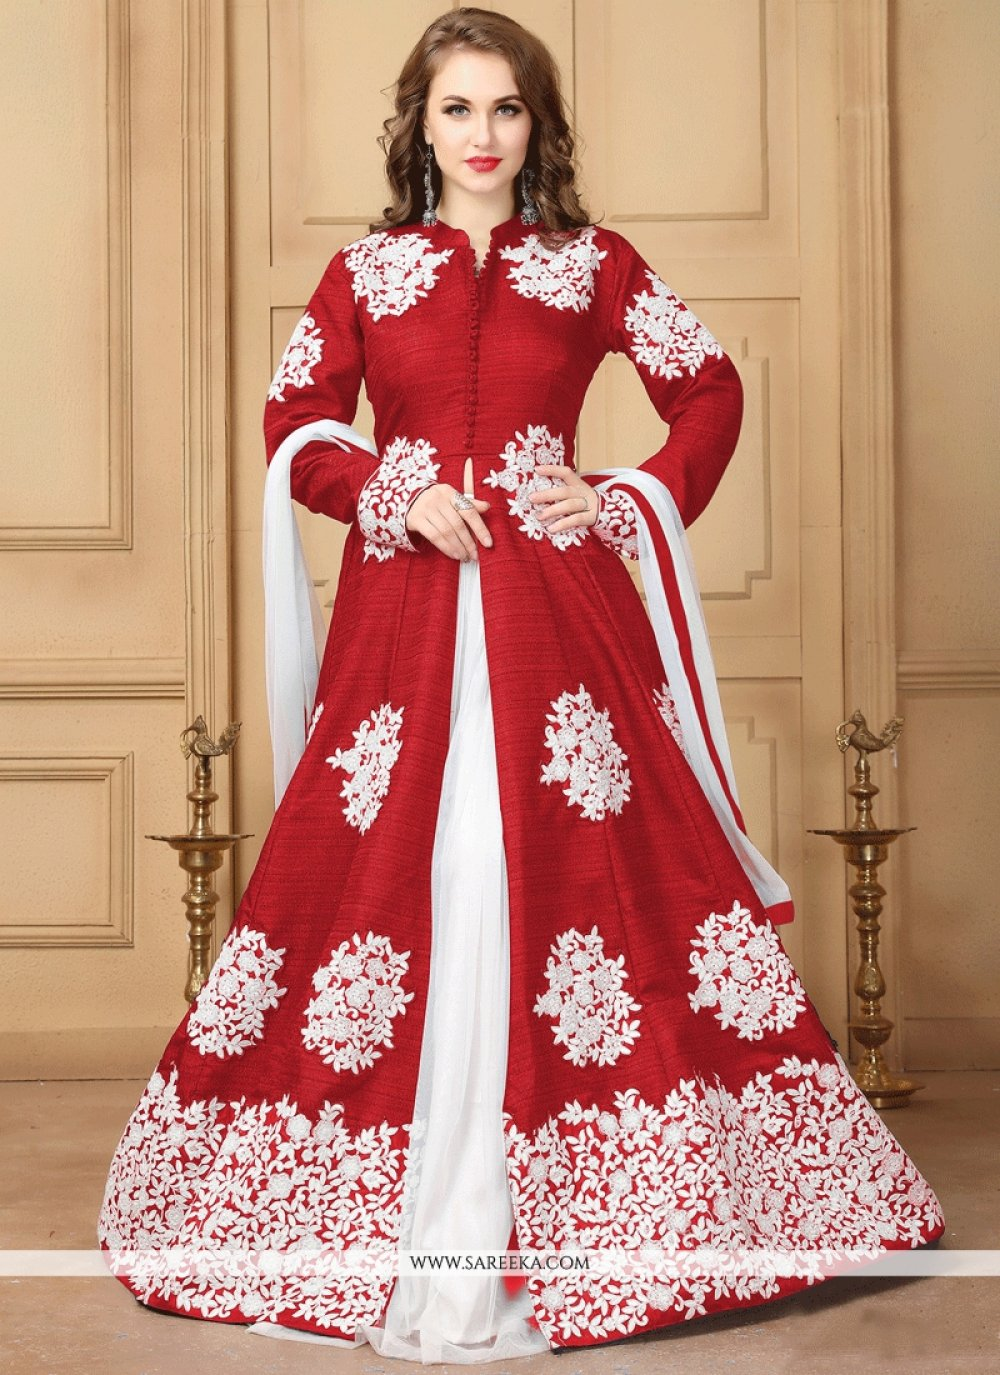 Resham Work Maroon and White Long Choli Lehenga